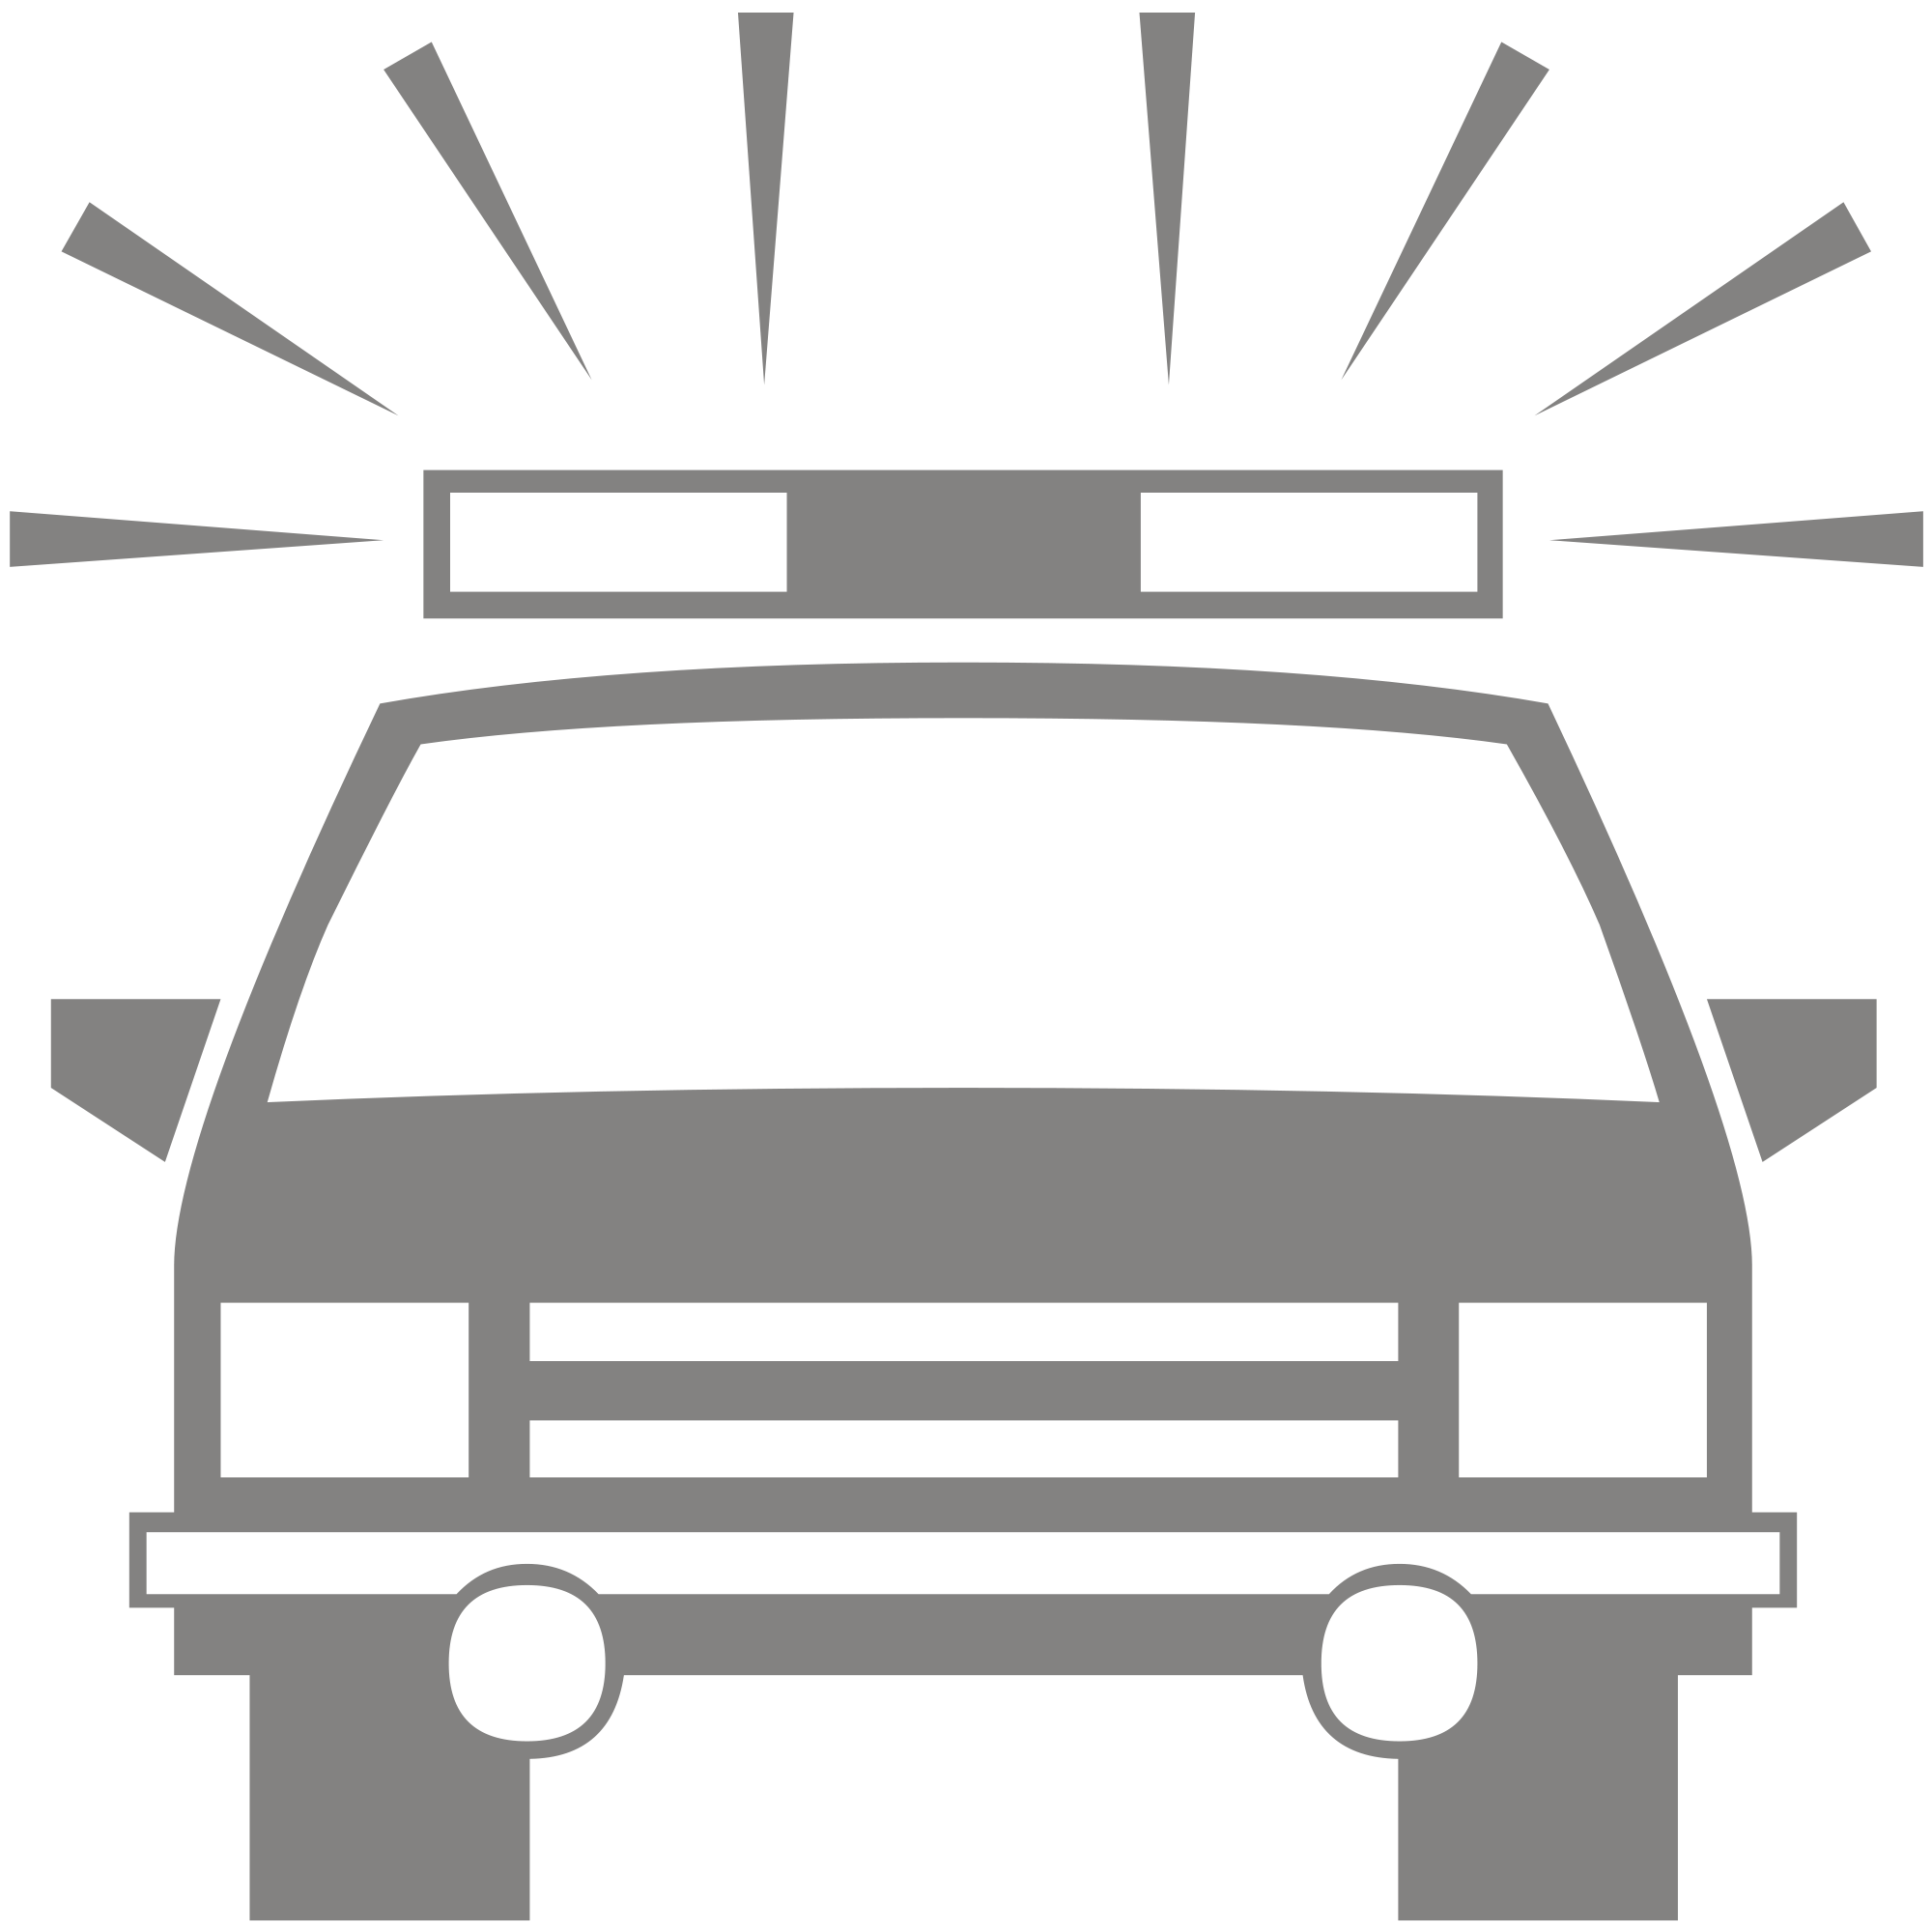 Tow truck silhouette at. Clipart cars police officer